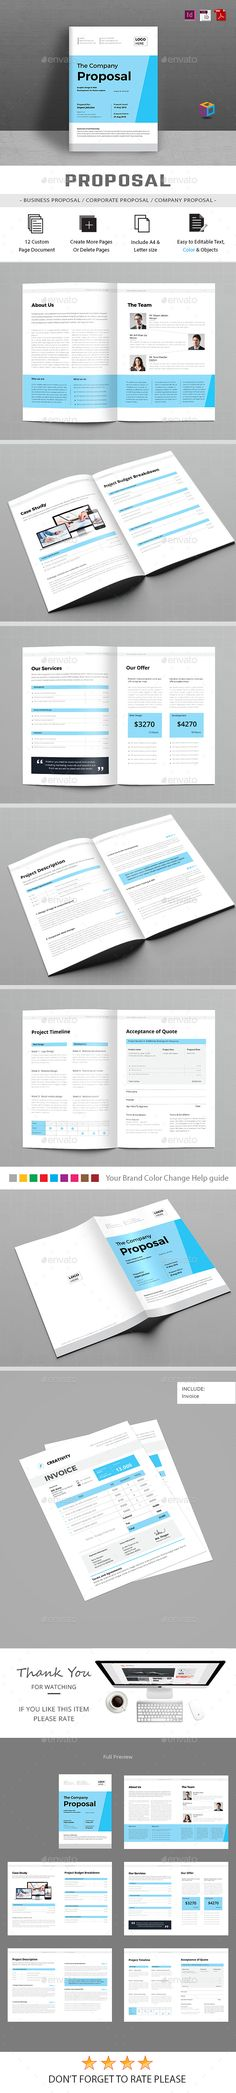 Proposal u2014 InDesign Template red business u2022